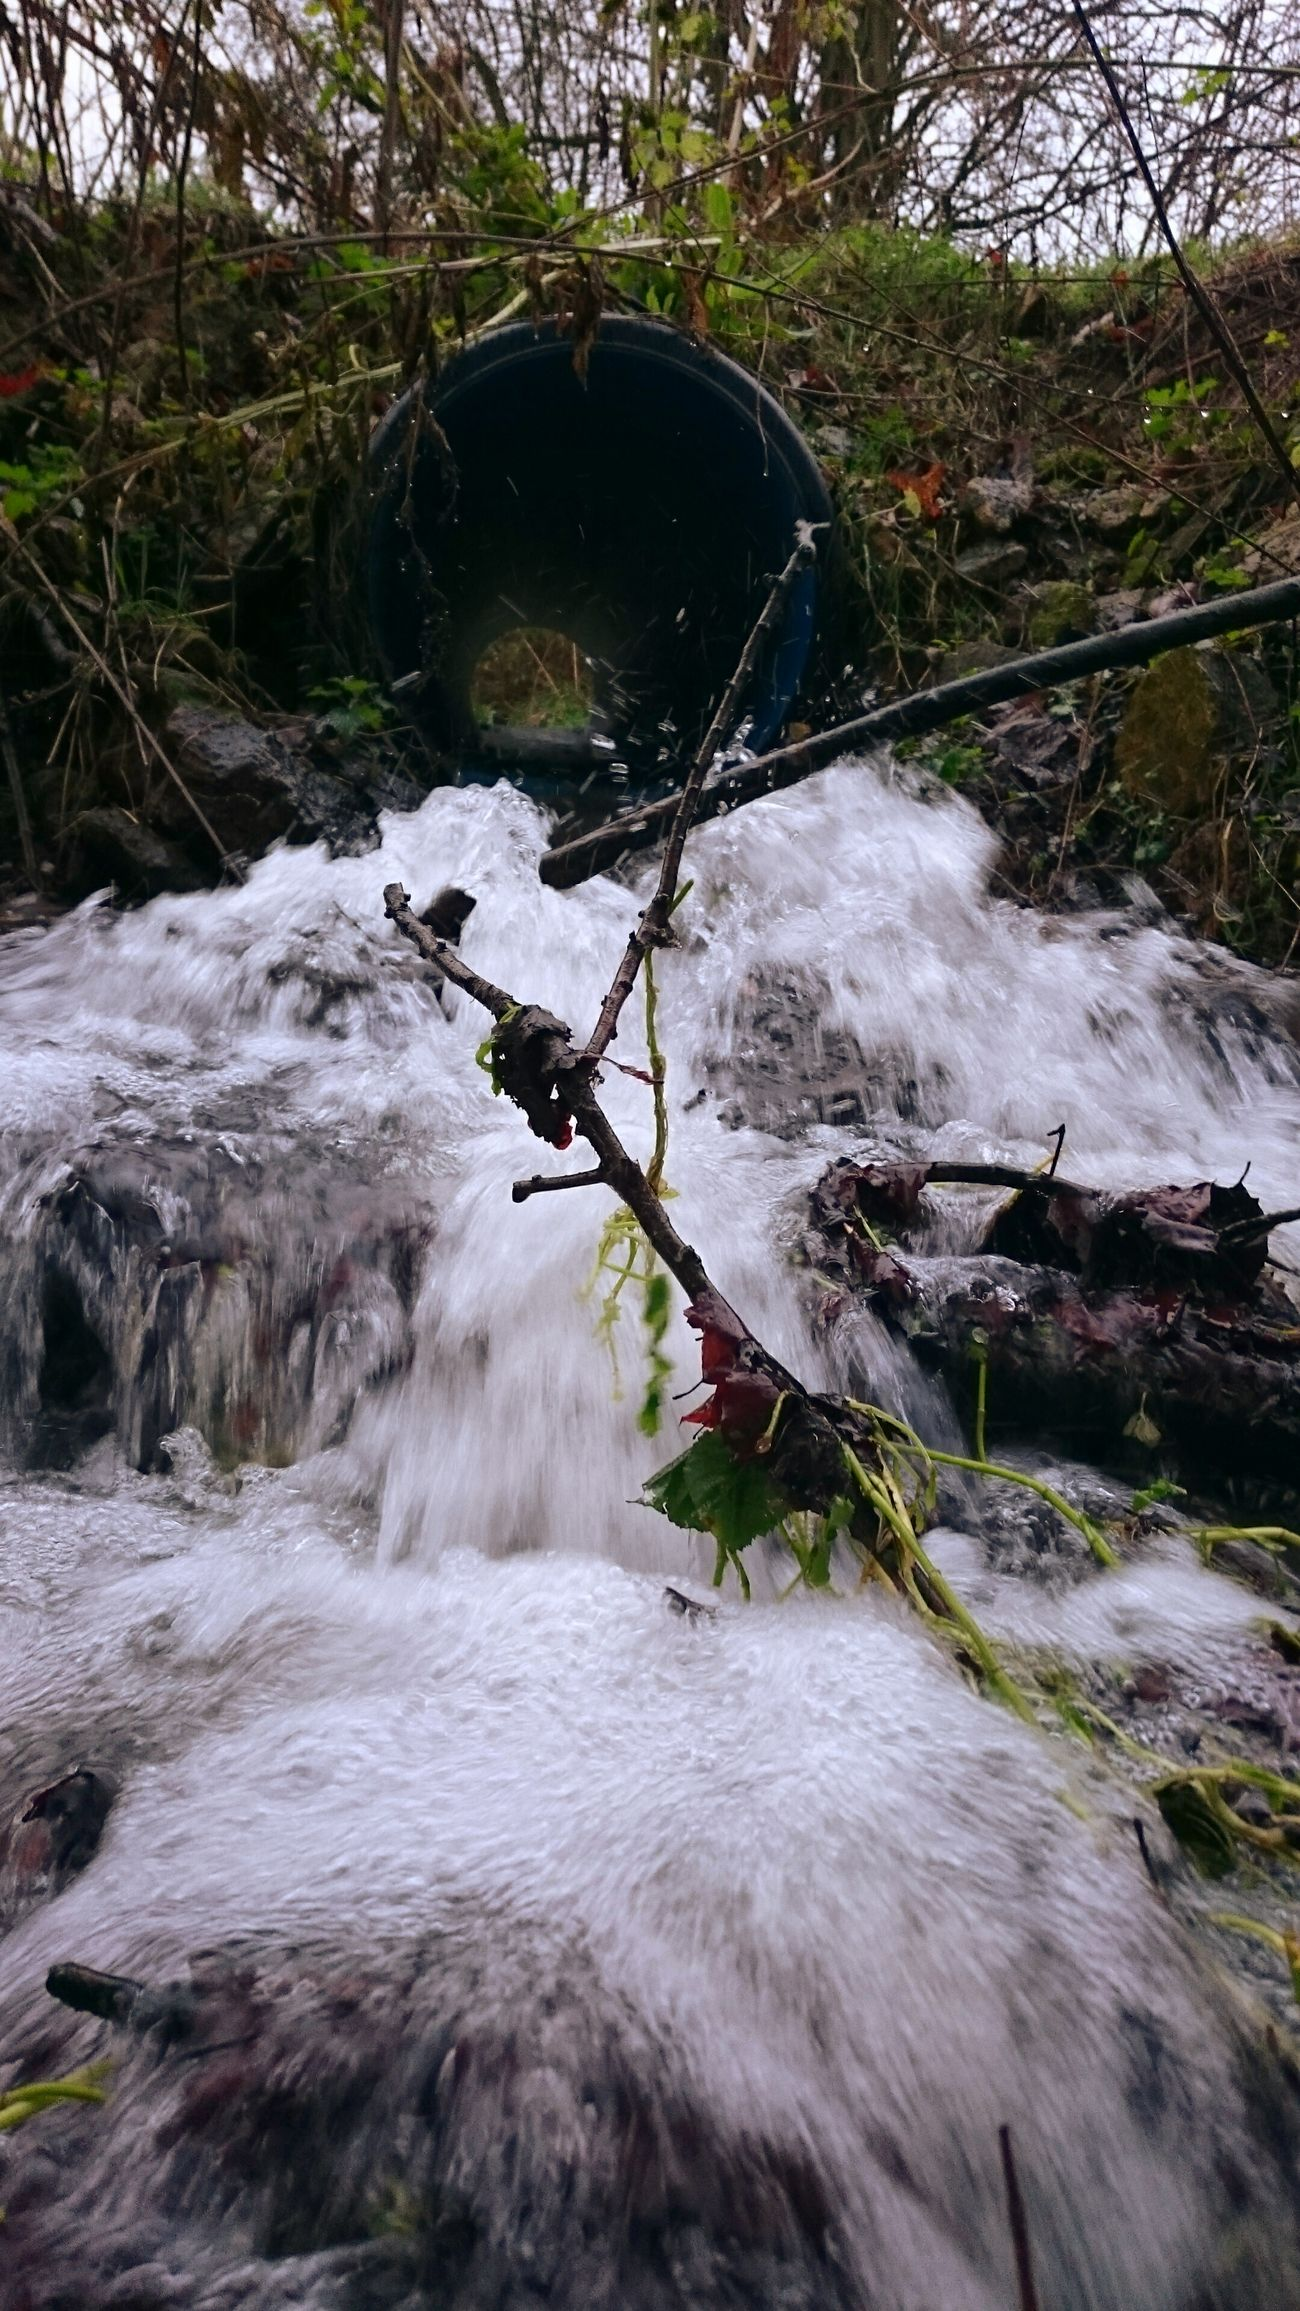 Taking Photos Small Waterfall Watching Waterfalls Waterfall #water #landscape #nature #beautiful Winter Woodland Woodland Streams Streams Of Water Streams Waterscape Bare Branches Water Waterfall Beauty In Nature Naturephotography Cascadingwater Torrent MossyRocks